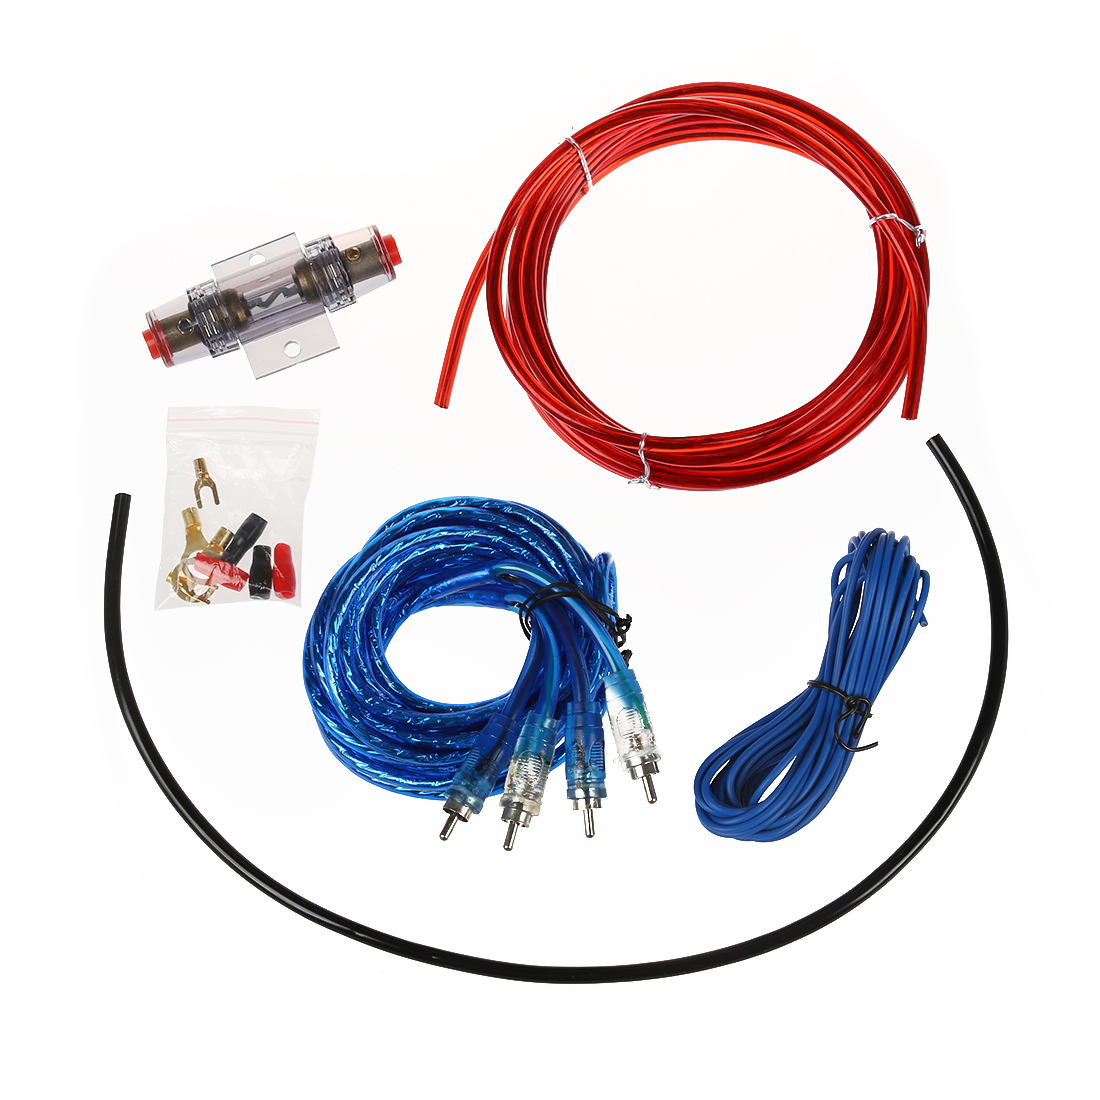 online get cheap jack amp aliexpress com alibaba group top deals 1500w car audio wire wiring amplifier subwoofer speaker installation kit 8ga power cable 60